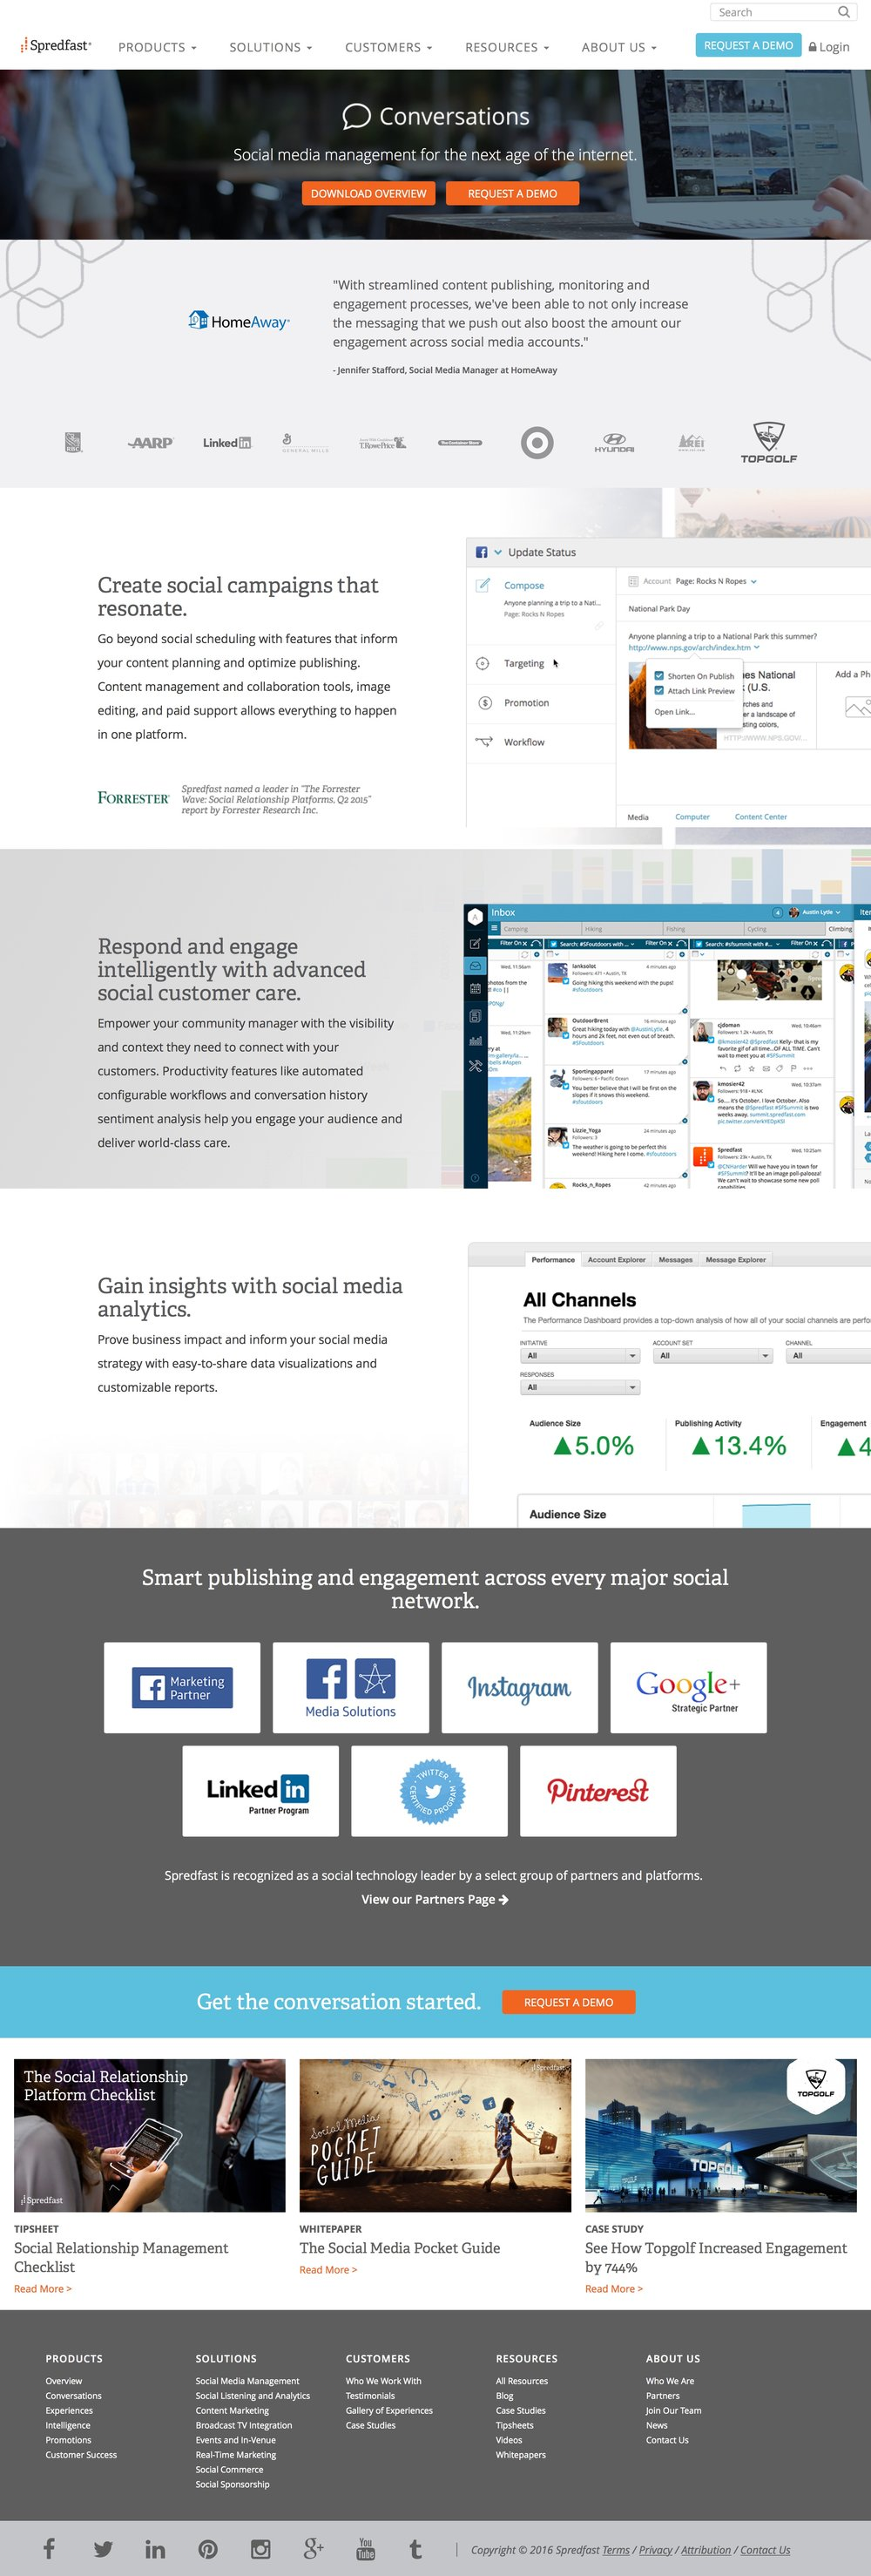 Social Media Management Platform | Social Monitoring Software 2.jpg